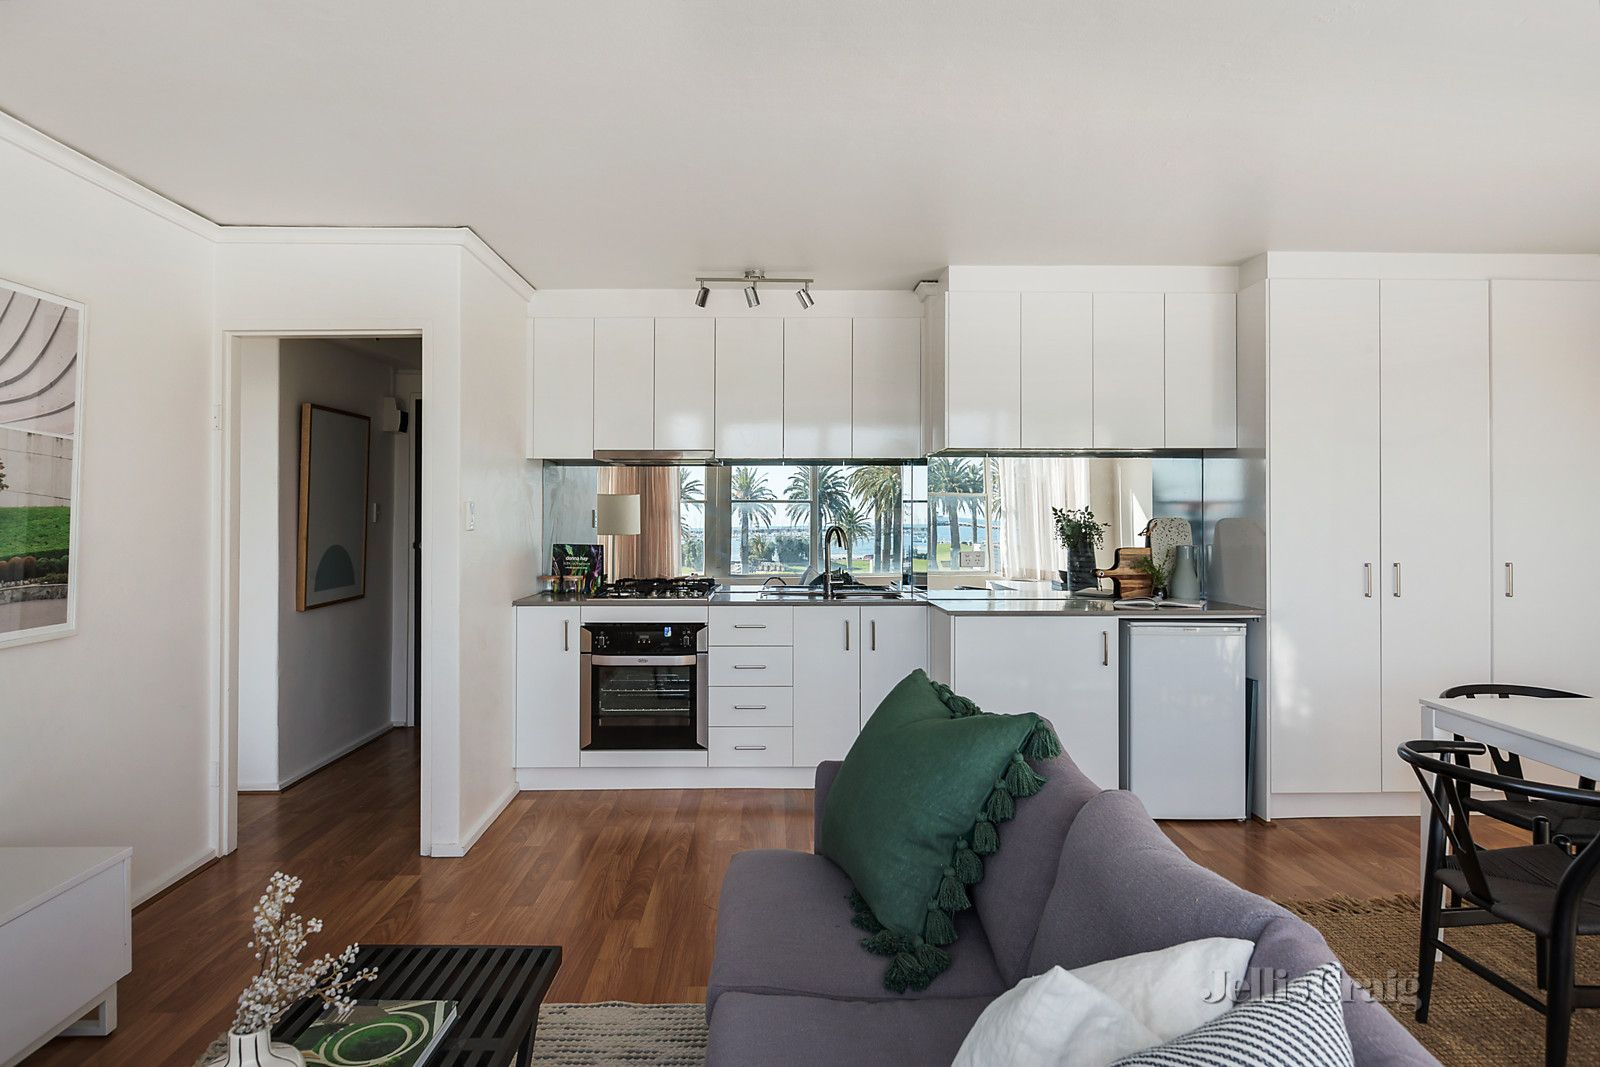 4/350 Beaconsfield Parade, St Kilda West VIC 3182, Image 2